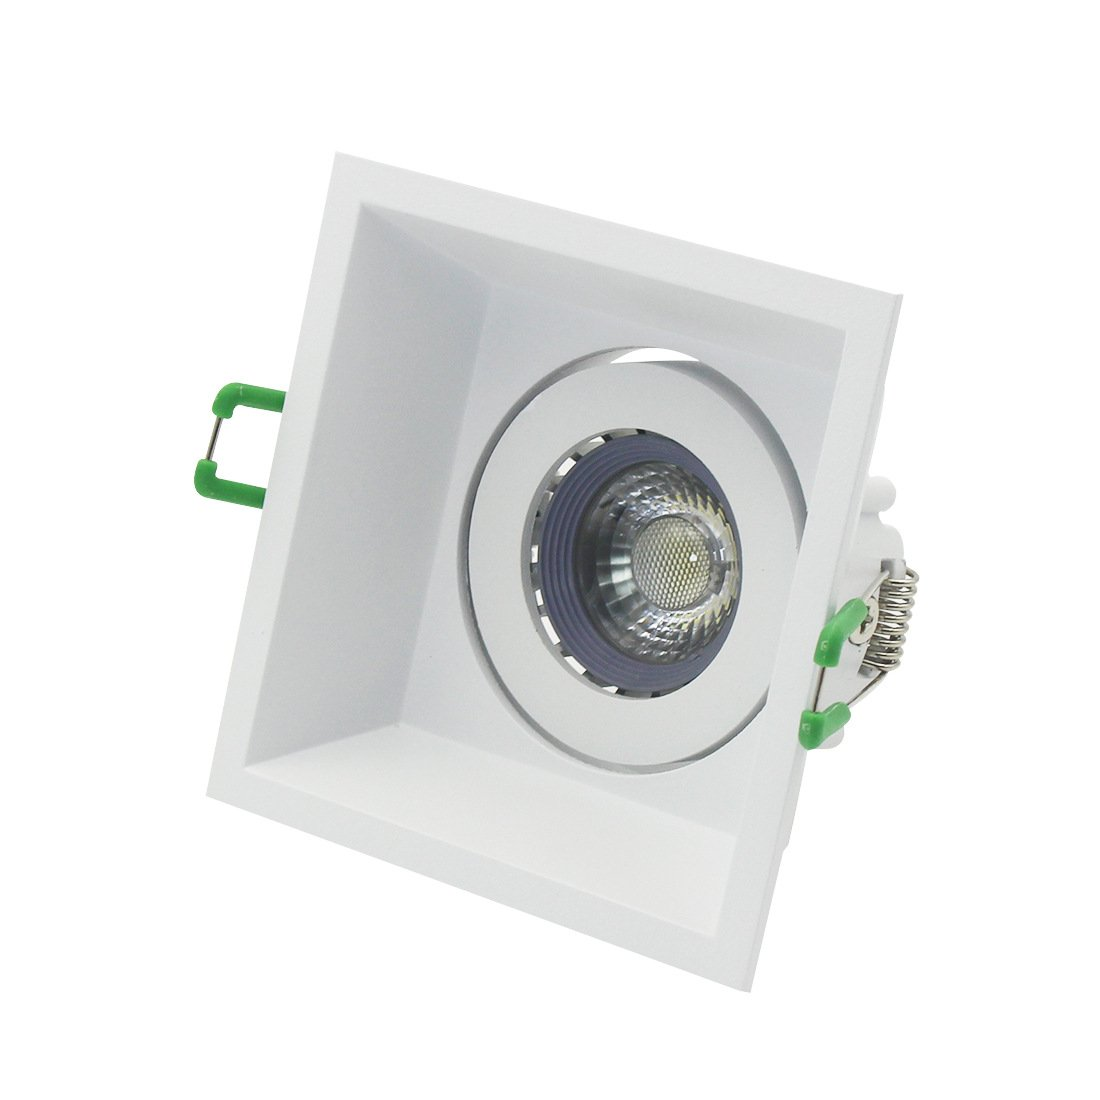 Recessed Can Light Trim Kit LED Downlight with 12V GU5.3 5W LED Bulb MR16 Socket Base,90mm Cut Out,Bulb Replaceable,Warm White,Angle Adjustable by LEDIARY (Image #1)